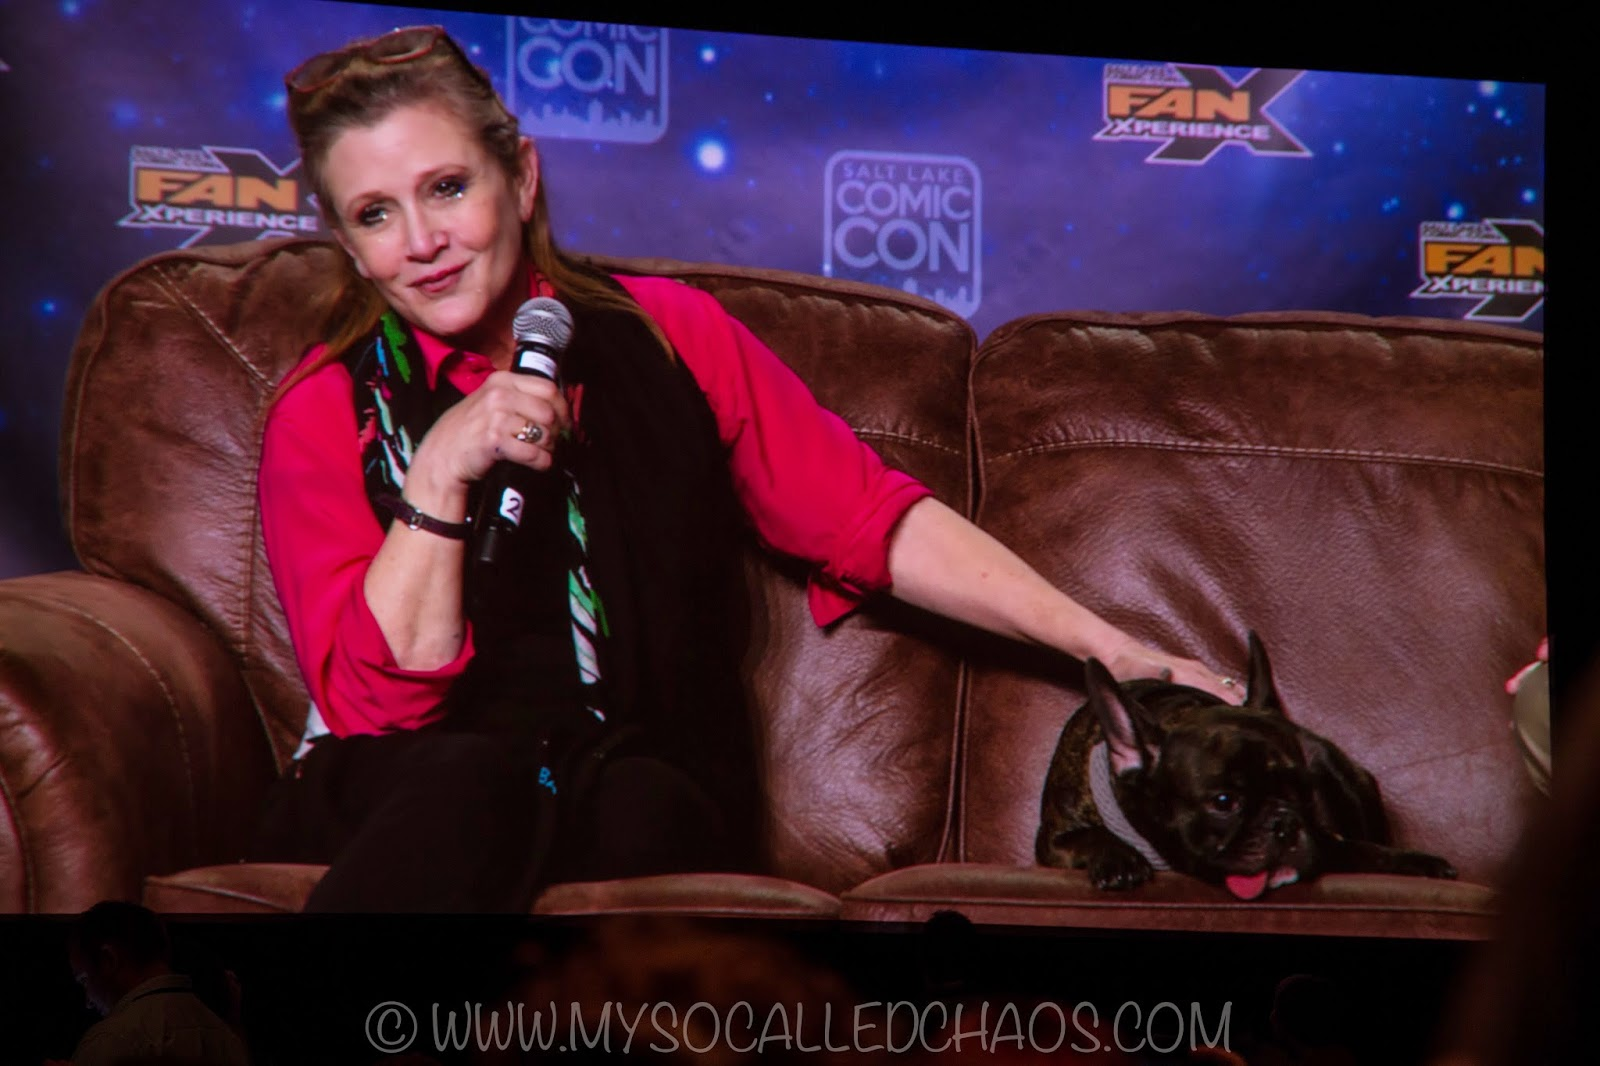 Carrie Fisher at Salt Lake Comic Con FanX 2015 #FanX15